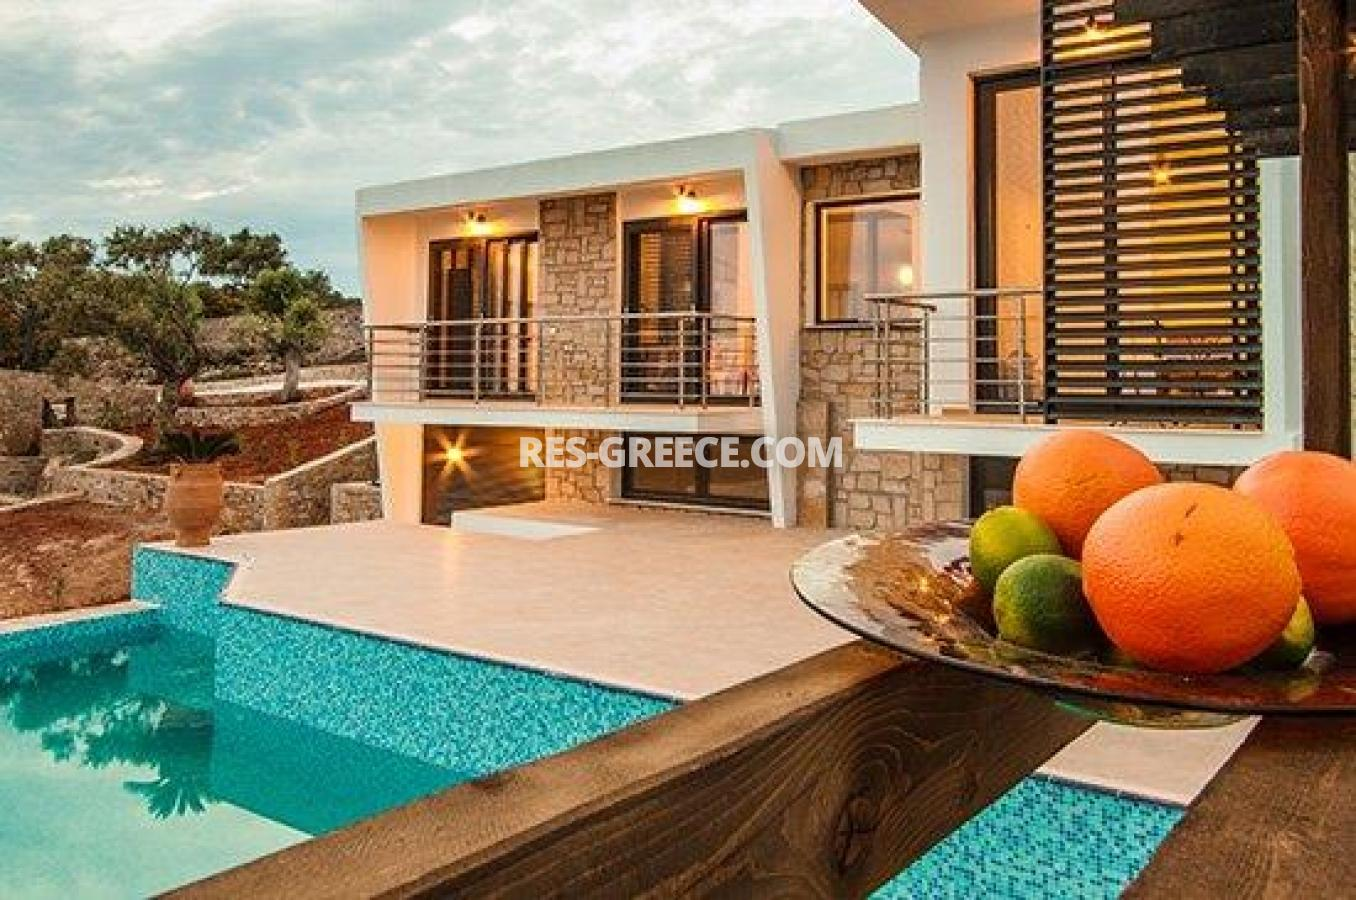 Villa MM, Northern Aegean Islands, Greece - 2 luxury properties in a gated complex with private beach - Photo 1